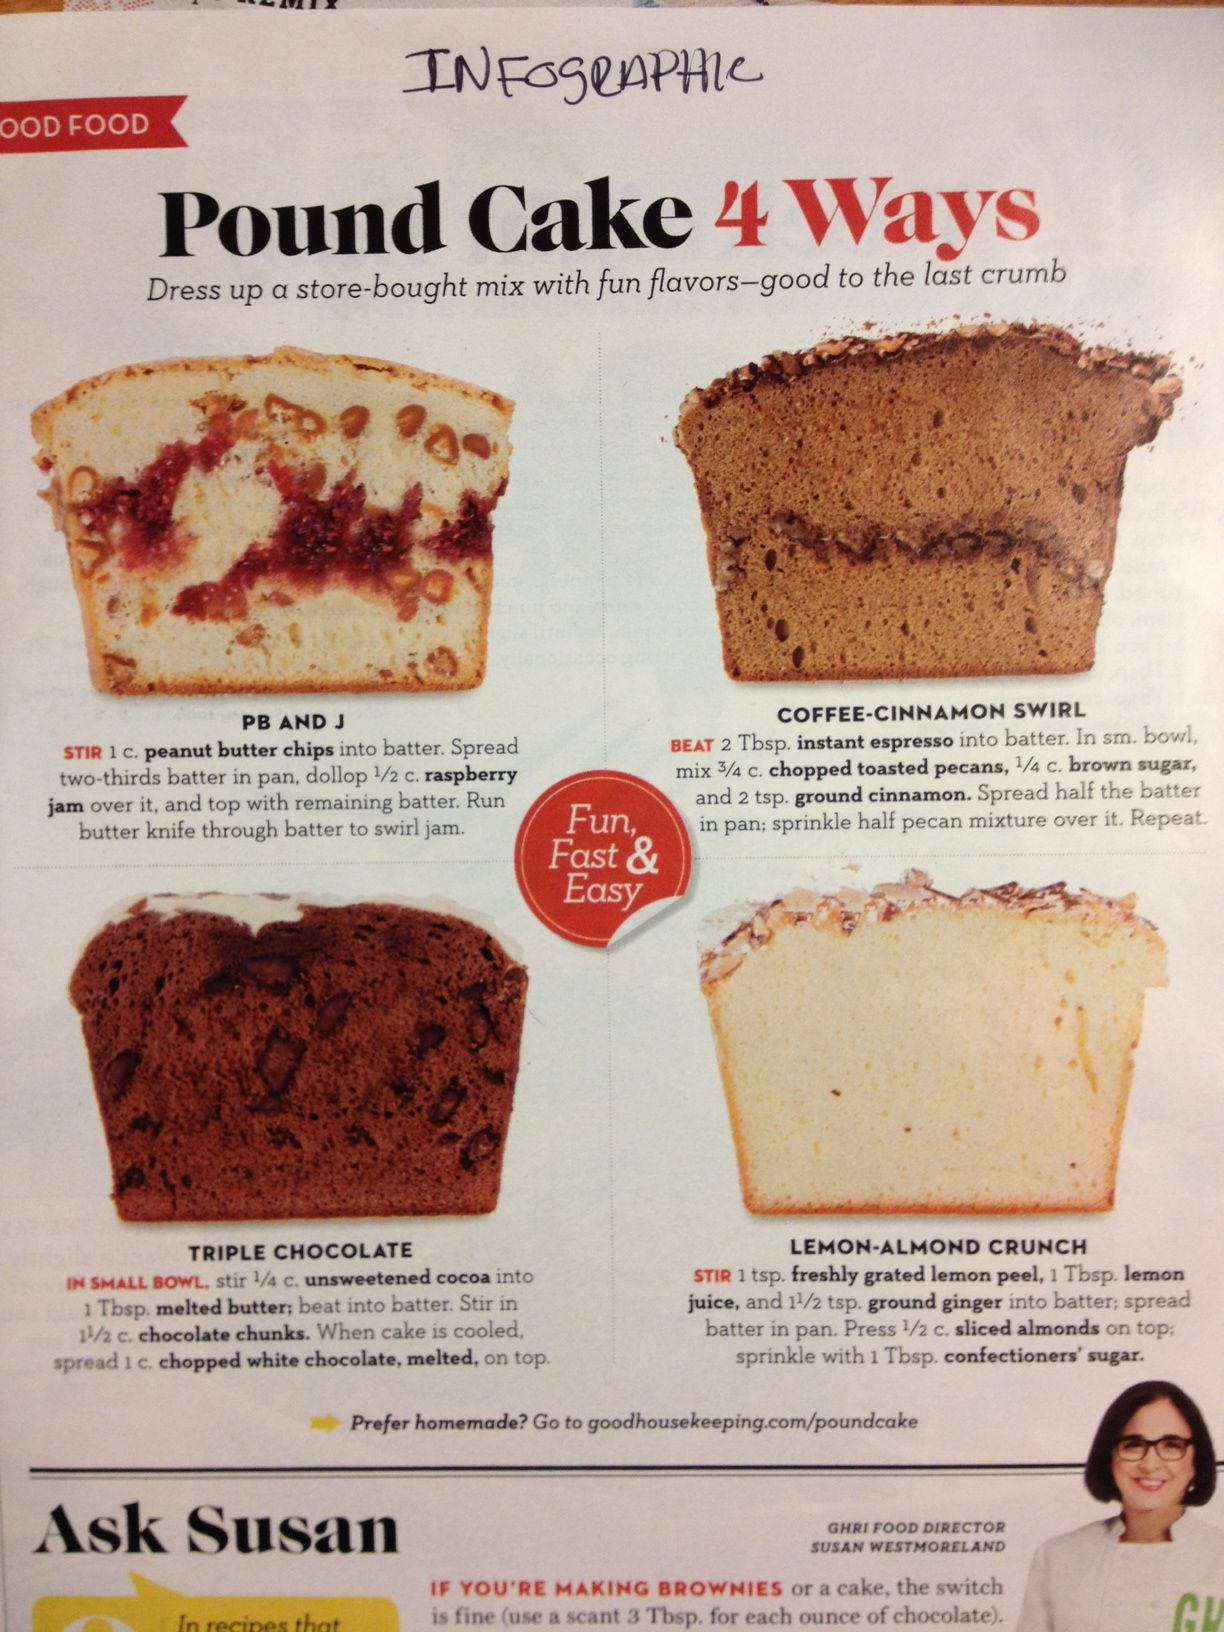 Good Housekeeping Pound Cake In 4 Ways Dress Up A Store Bought Mix With Fun Flavors Good To The Last Crumb Infographi Food Peanut Butter Chips Cake Recipes